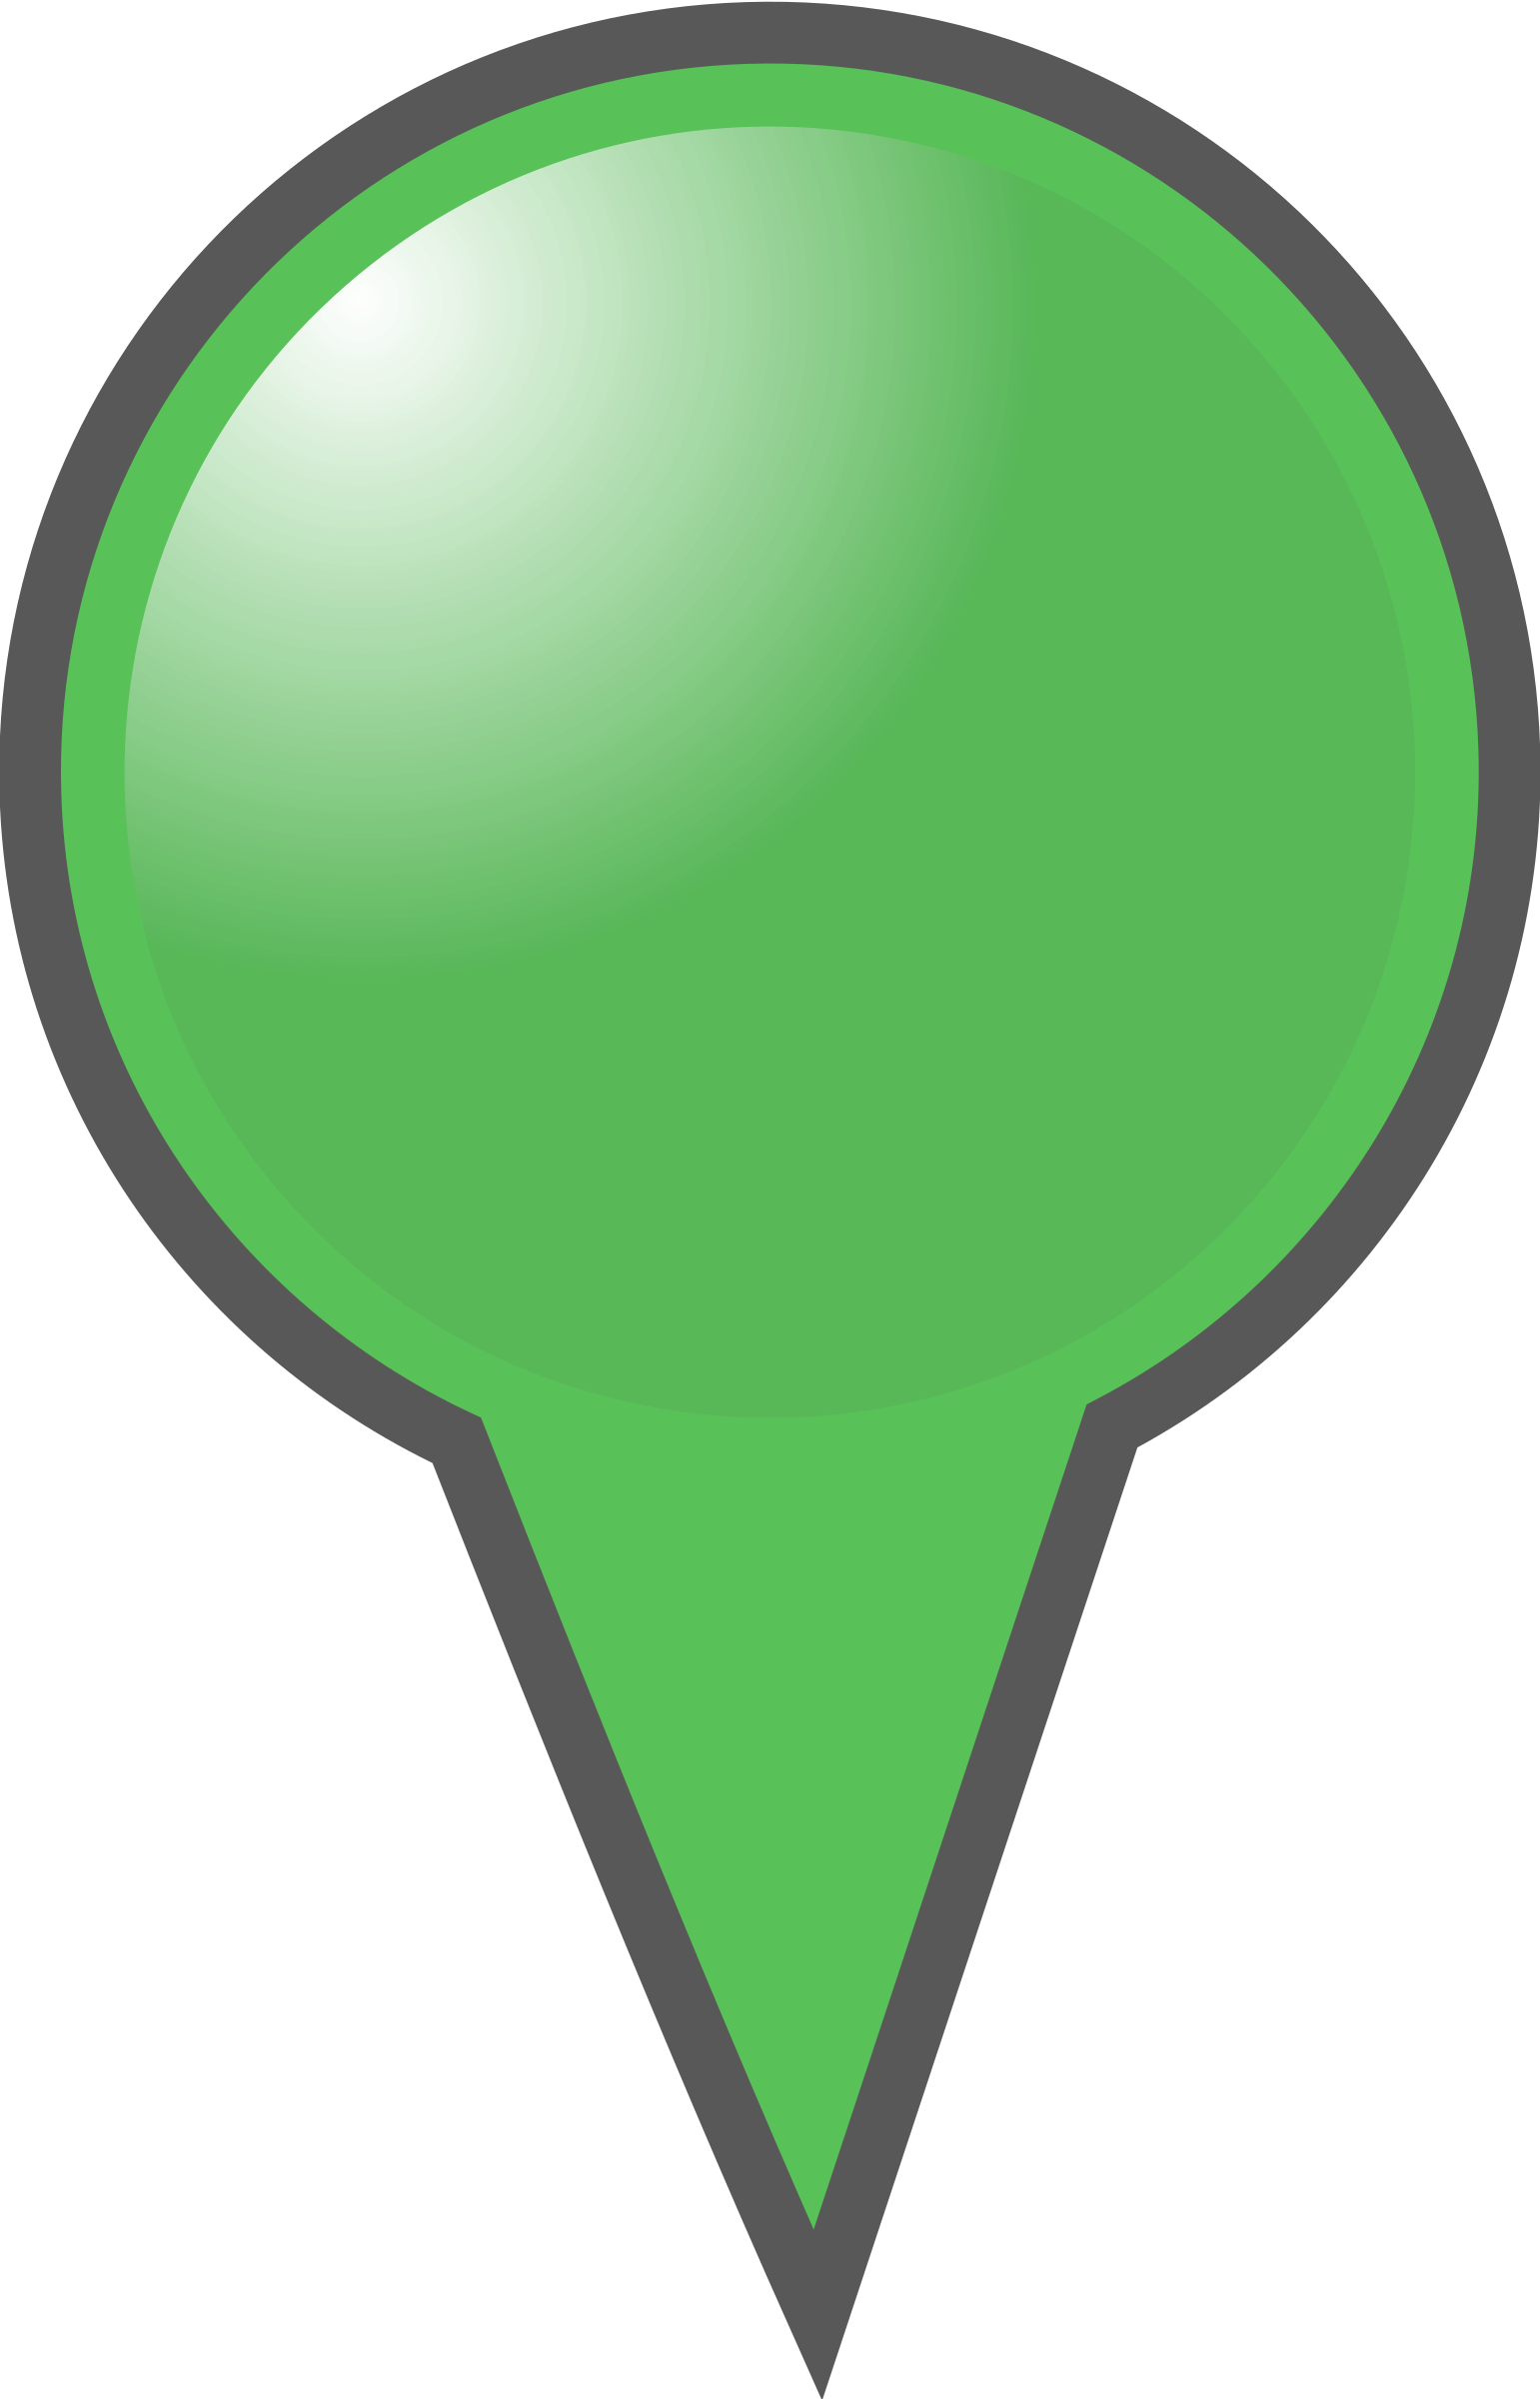 Map marker big image. Markers clipart green